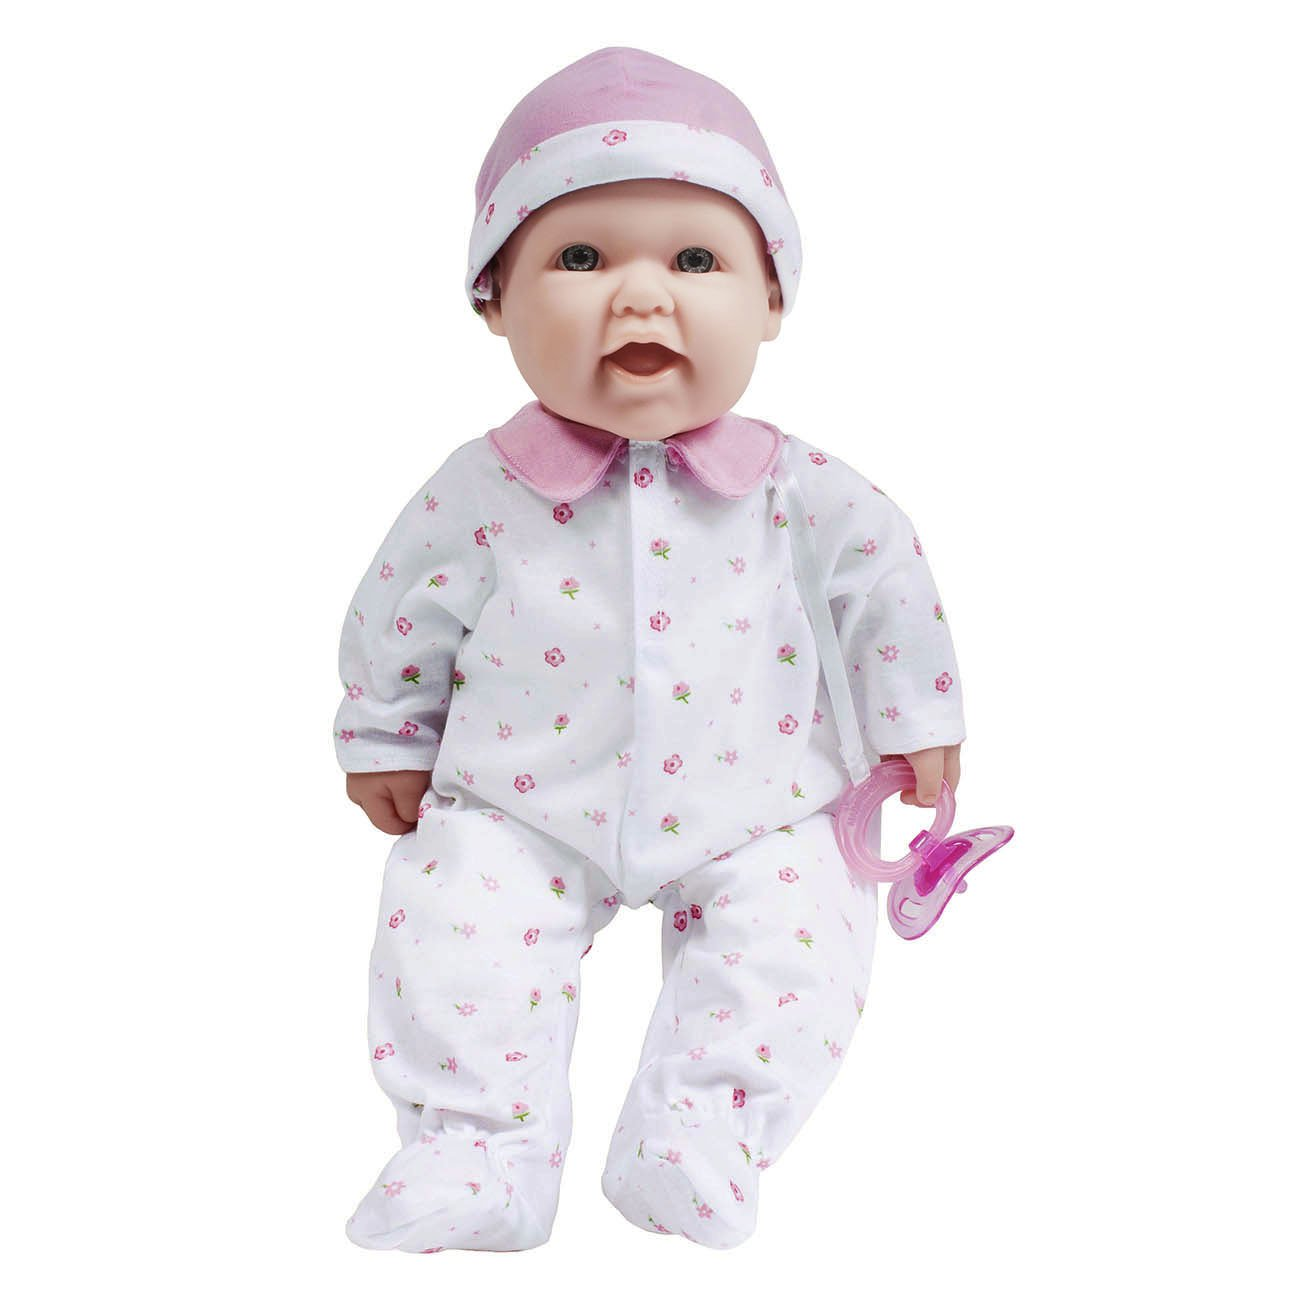 JC Toys, La Baby 16-inch Purple Washable Soft Baby Doll with Baby Doll Accessories - For Children 12 Months and older, Designed by Berenguer JC Toys Group Inc. 15030_B